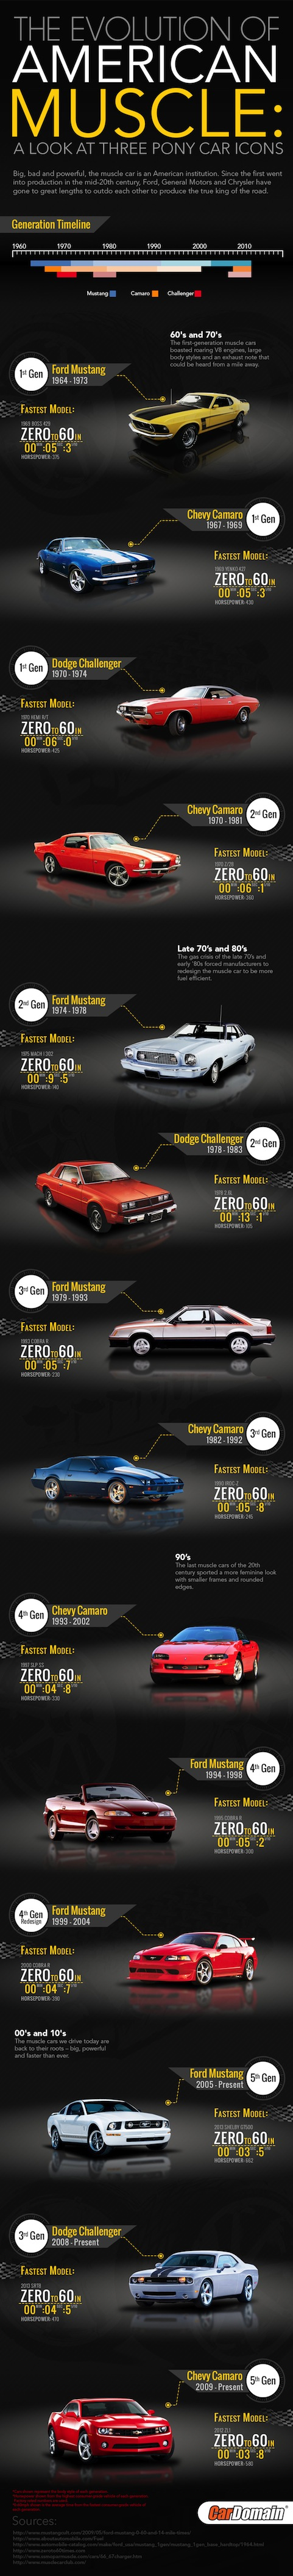 The Evolution of American Muscle: A Look at Three Pony Car Icons by CarDomain.com